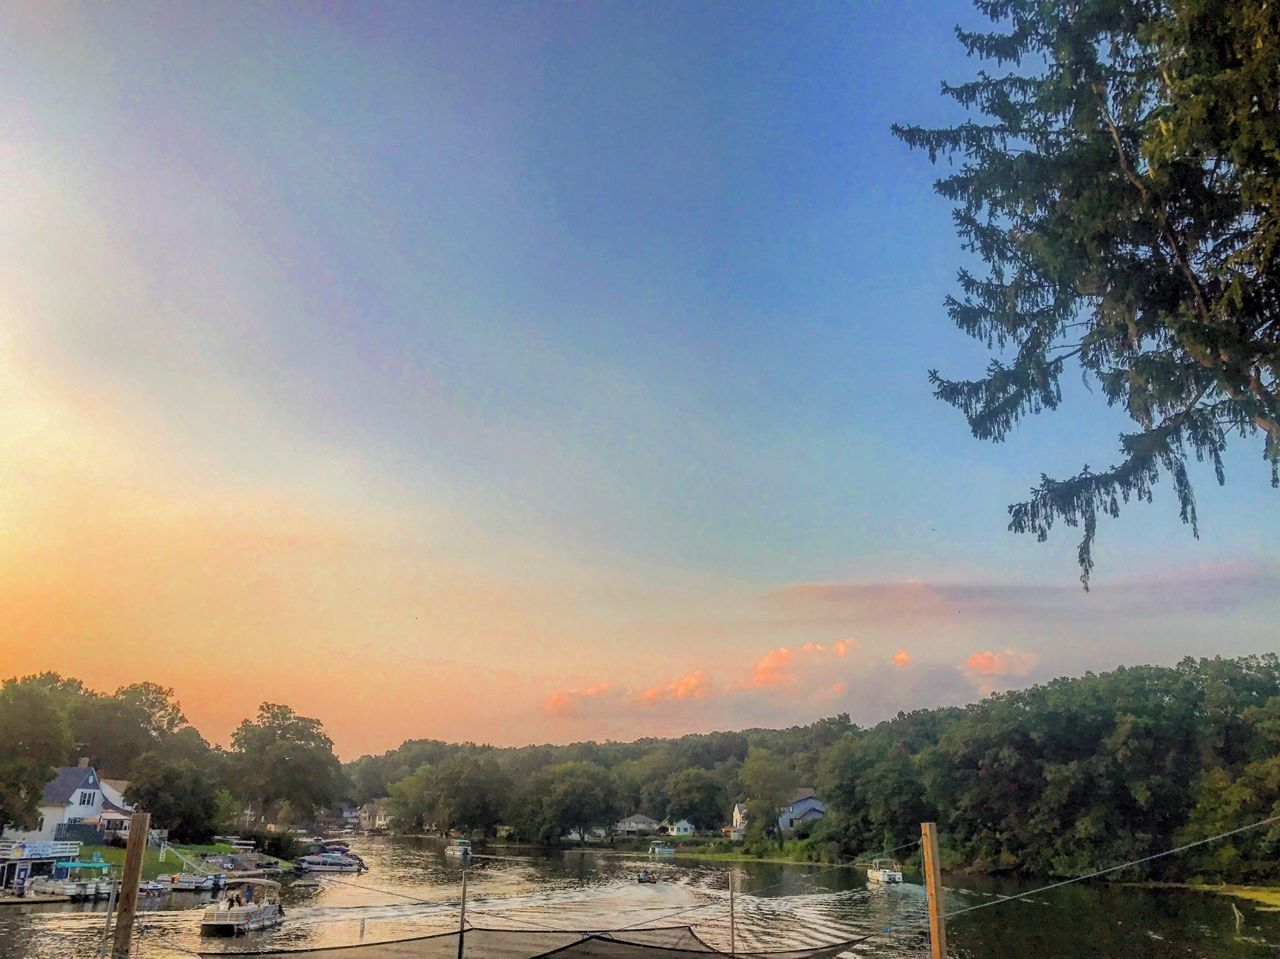 tree, beauty in nature, scenics, nature, sky, tranquil scene, tranquility, water, river, outdoors, no people, sunset, cloud - sky, nautical vessel, landscape, day